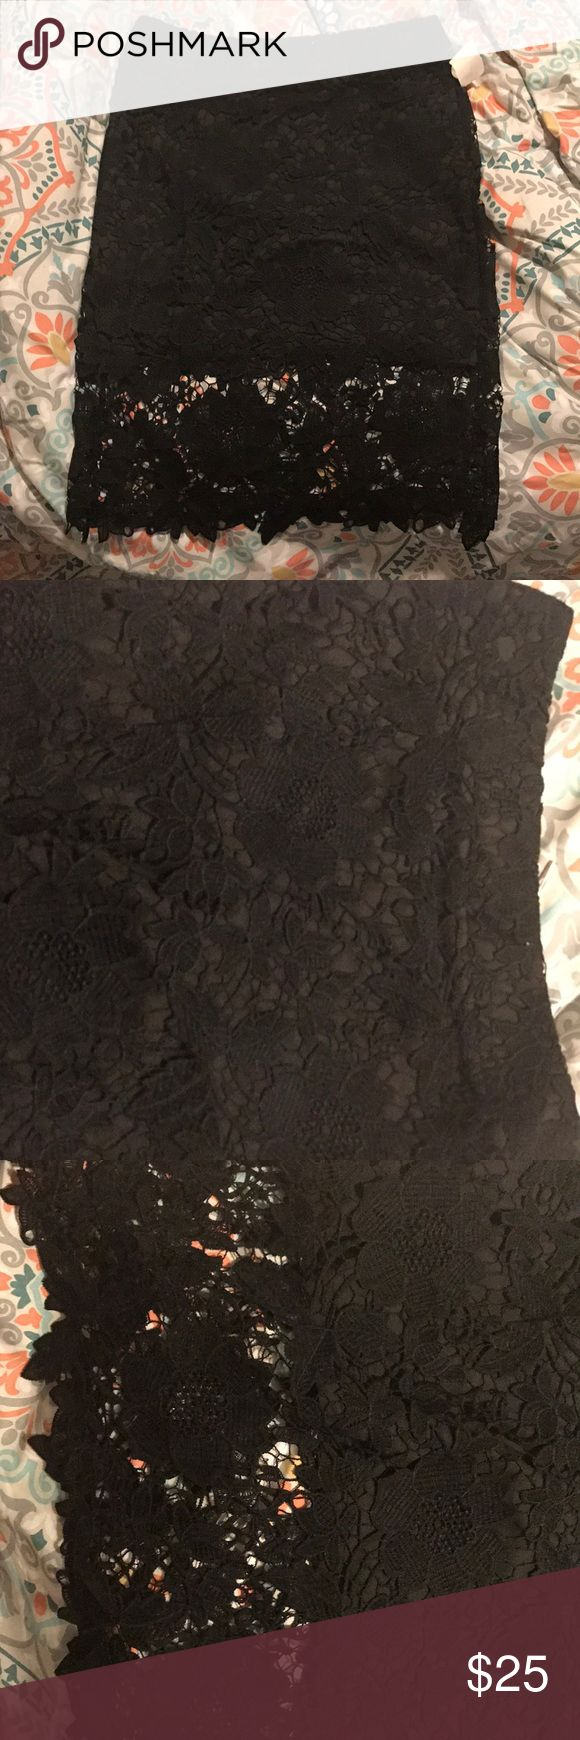 Black lace skirt This floral/lace skirt features a sharp pencil fit,  A-line half of slip giving you just enough skin to show through the lace that ends just above the knees,, Skirt also features a sliver zipper to the back great for any occasion ladies Skirts Midi